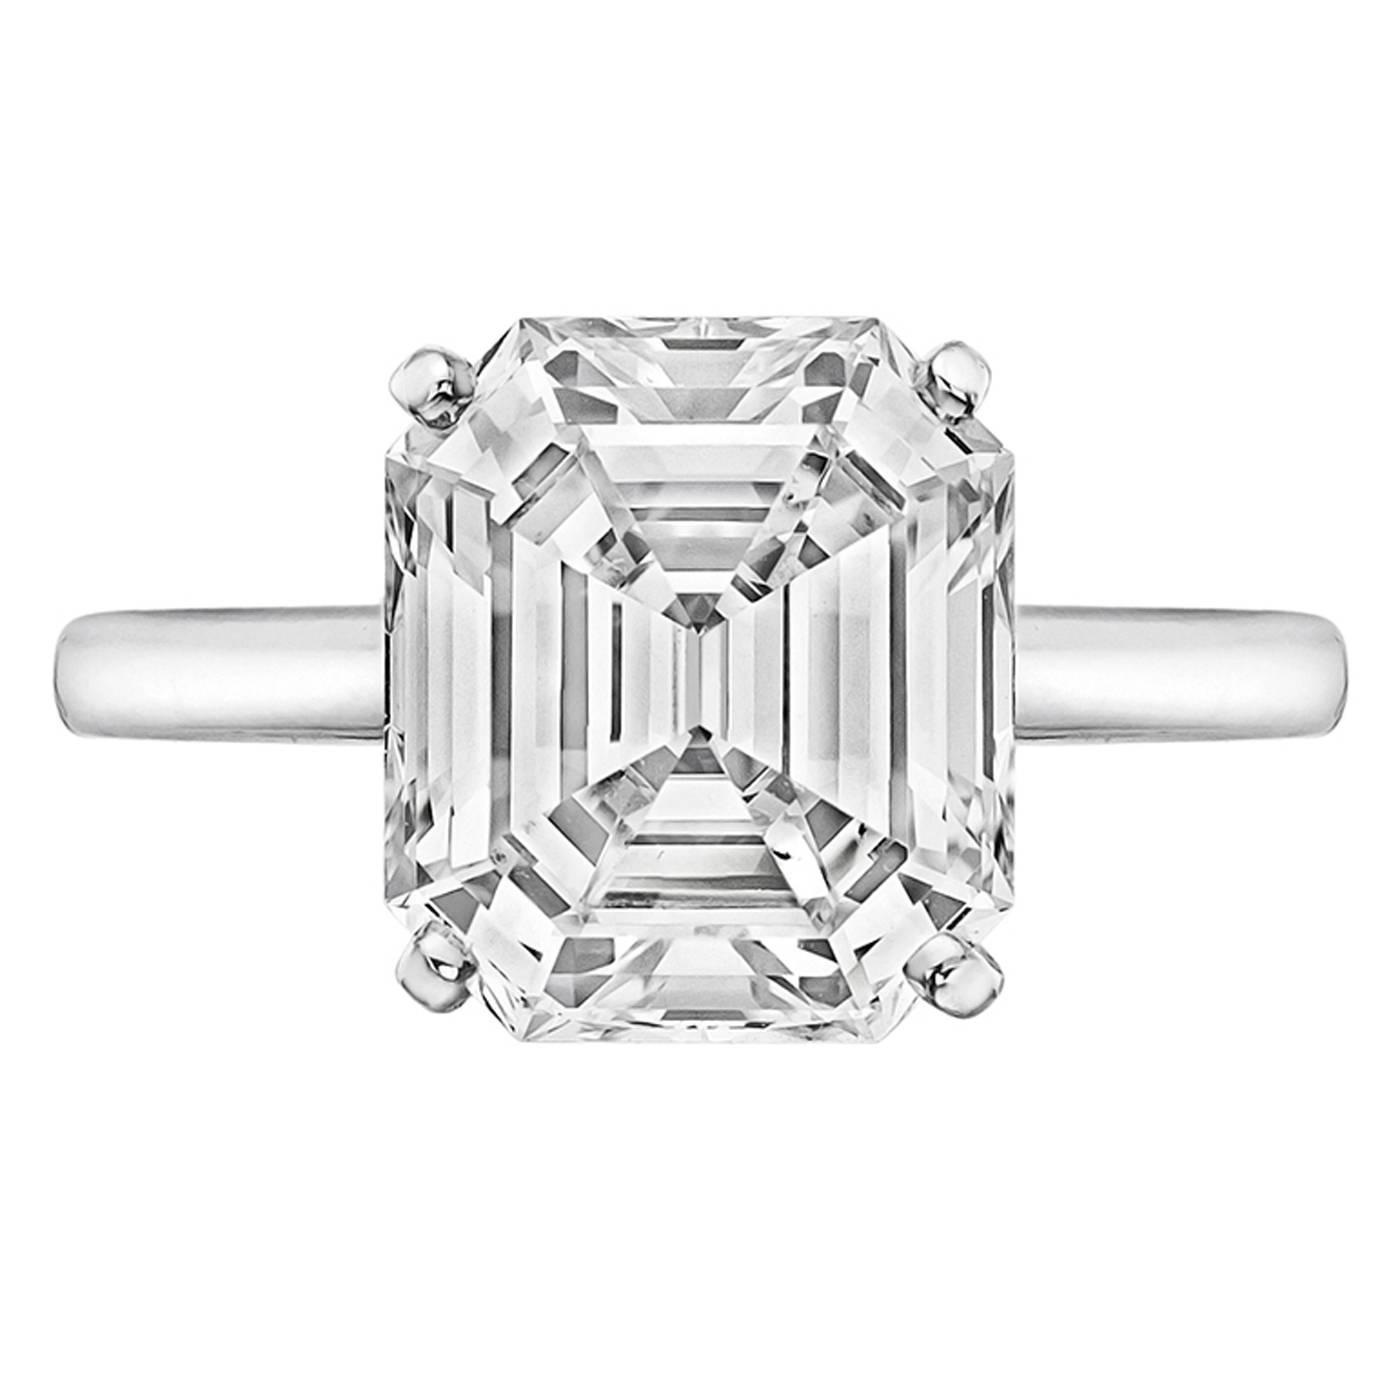 baguette scale with engagement white set shoulders gold david crop shop tapered false emerald cut diamond upscale subsampling ring product the morris rings in